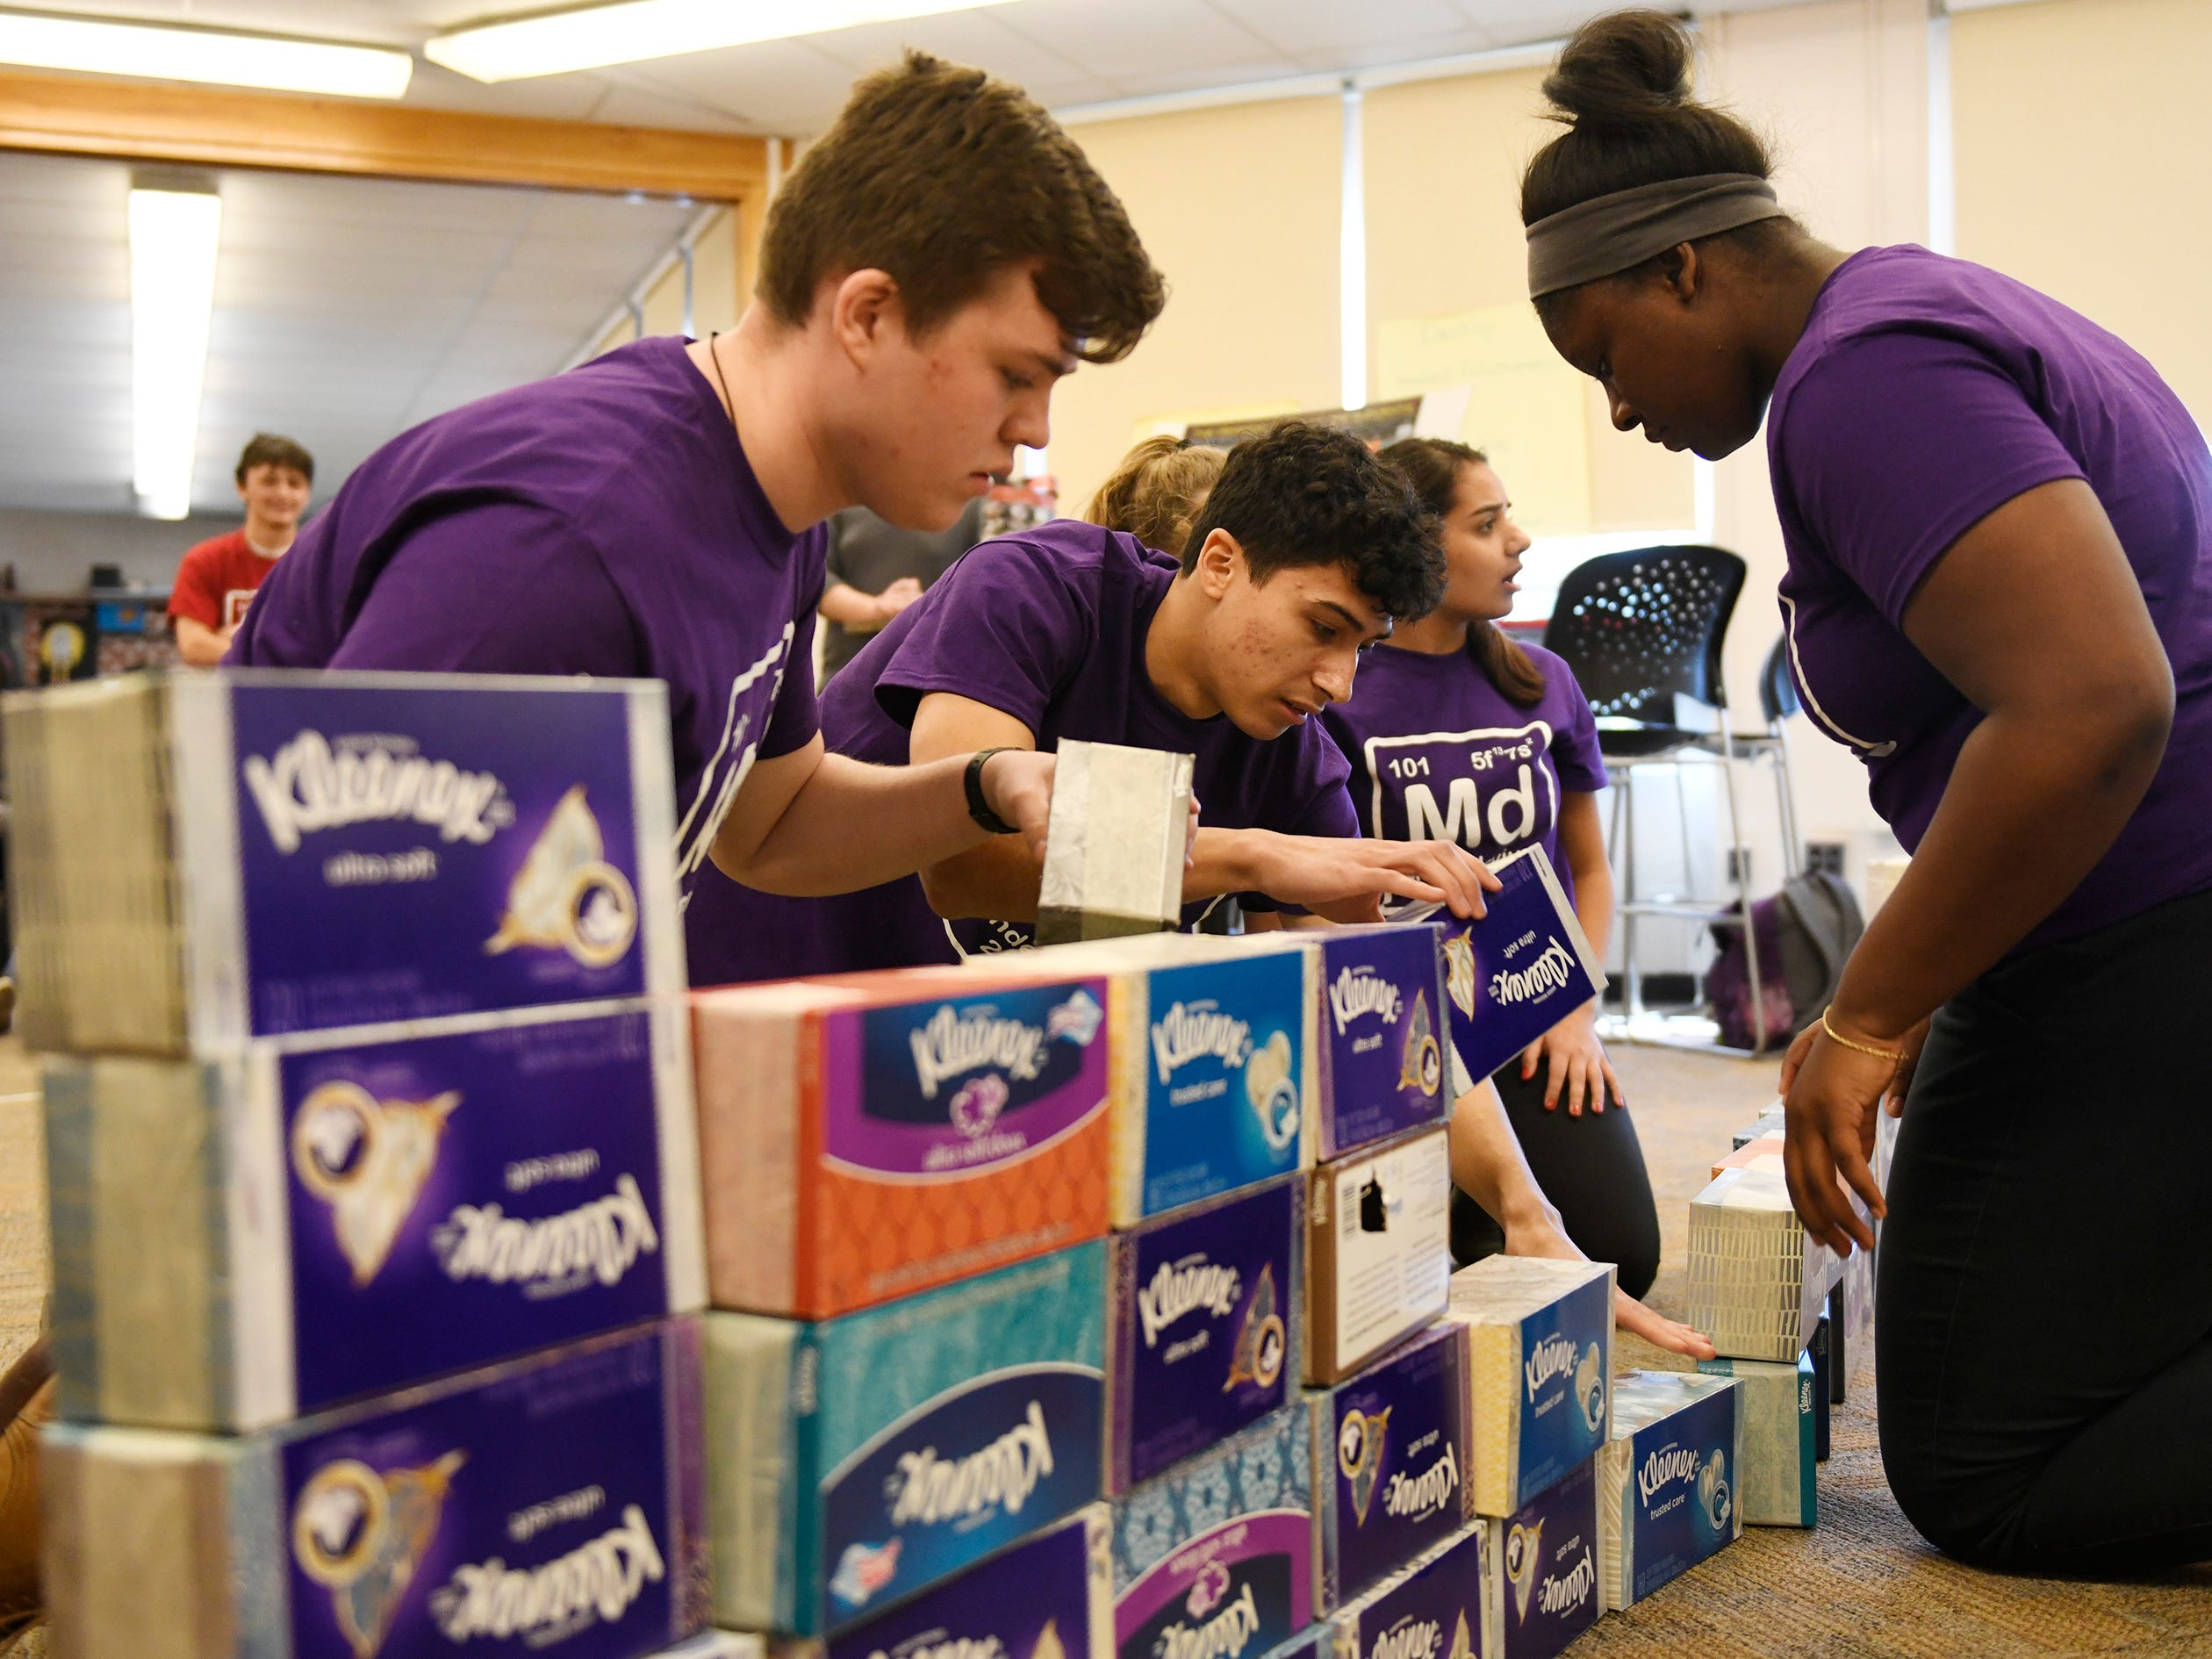 Students try to build the periodic table out of tissue boxes within a set time during a special event celebrating the 150th anniversary of the creation of the Periodic Table at Vineland High School on Tuesday, March 19, 2019.